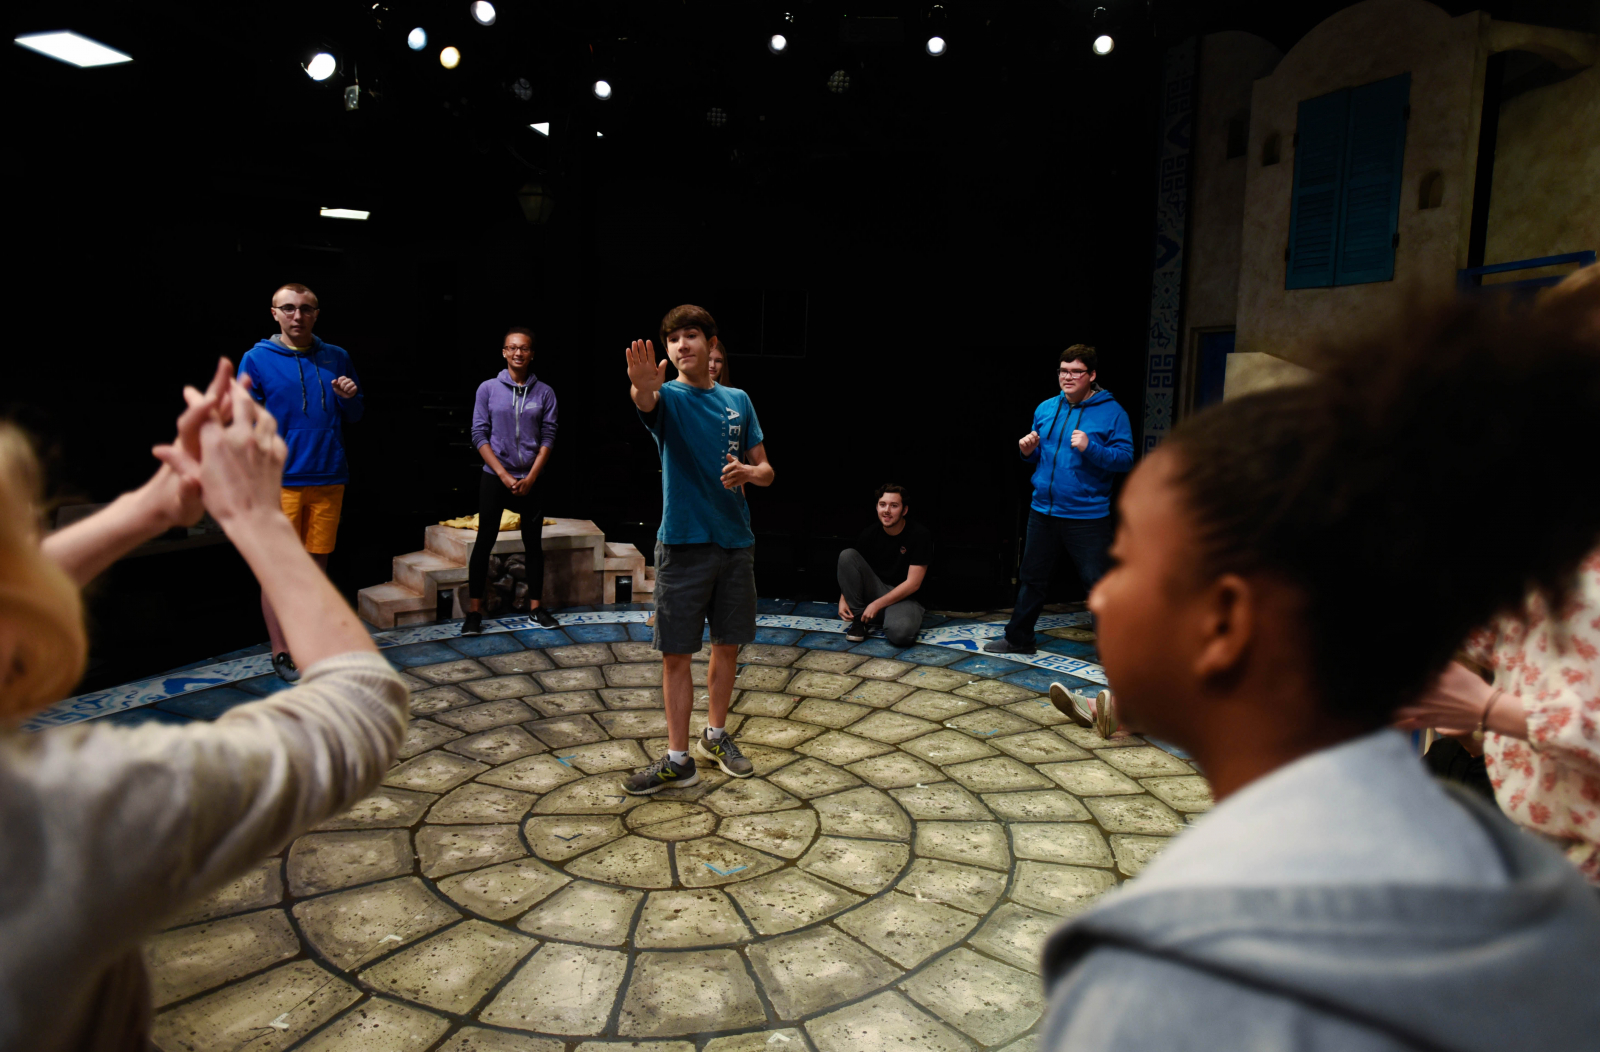 Summer Stage students play games and work on blocking a play at theREP in Albany Thursday, July 27, 2017.